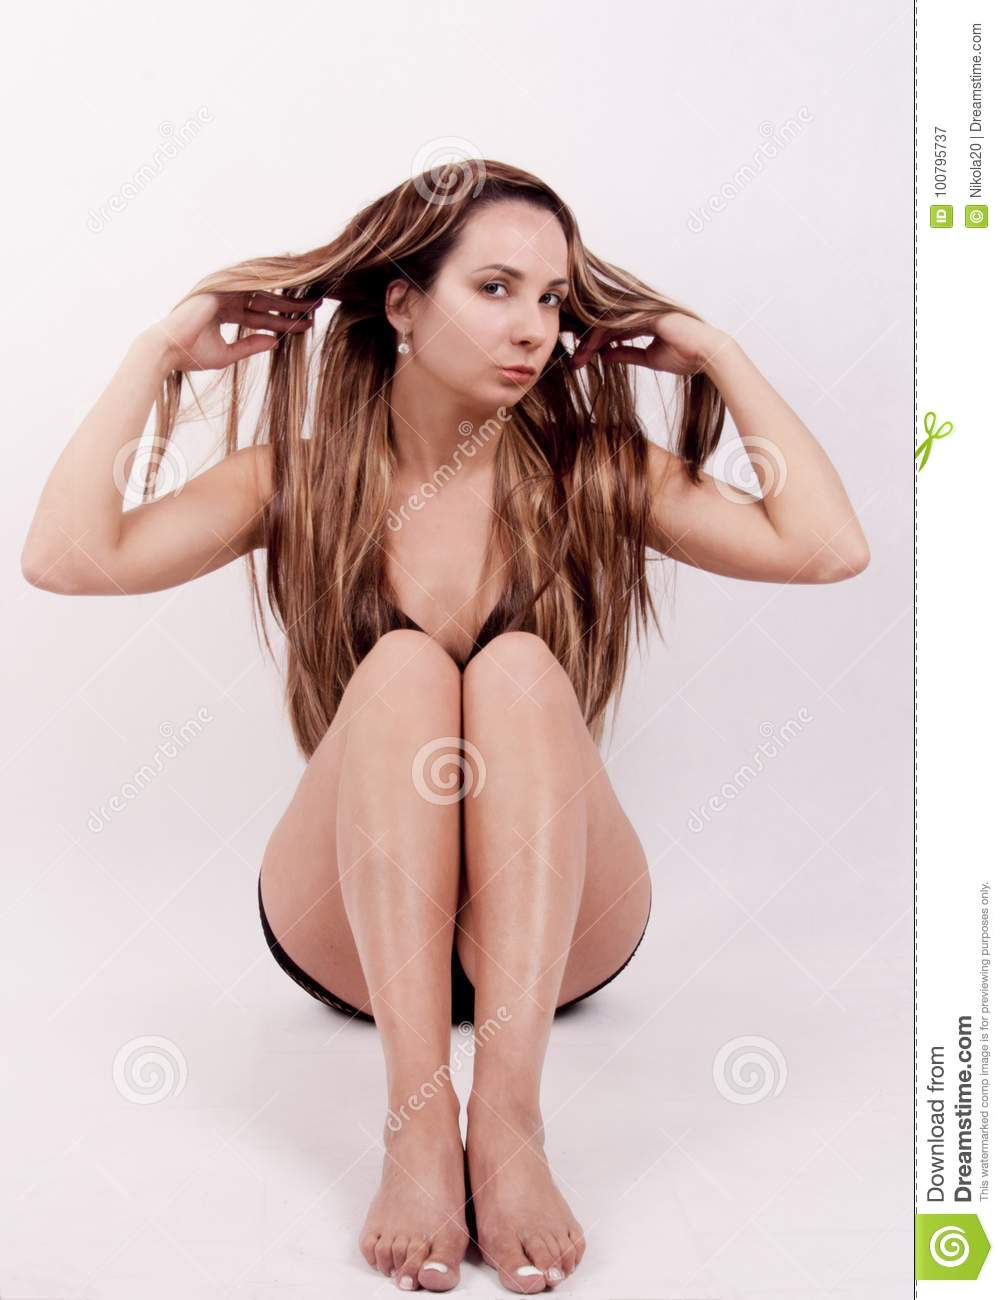 9f98f15f54d young girl in a black bathing suit on a white background. More similar stock  images